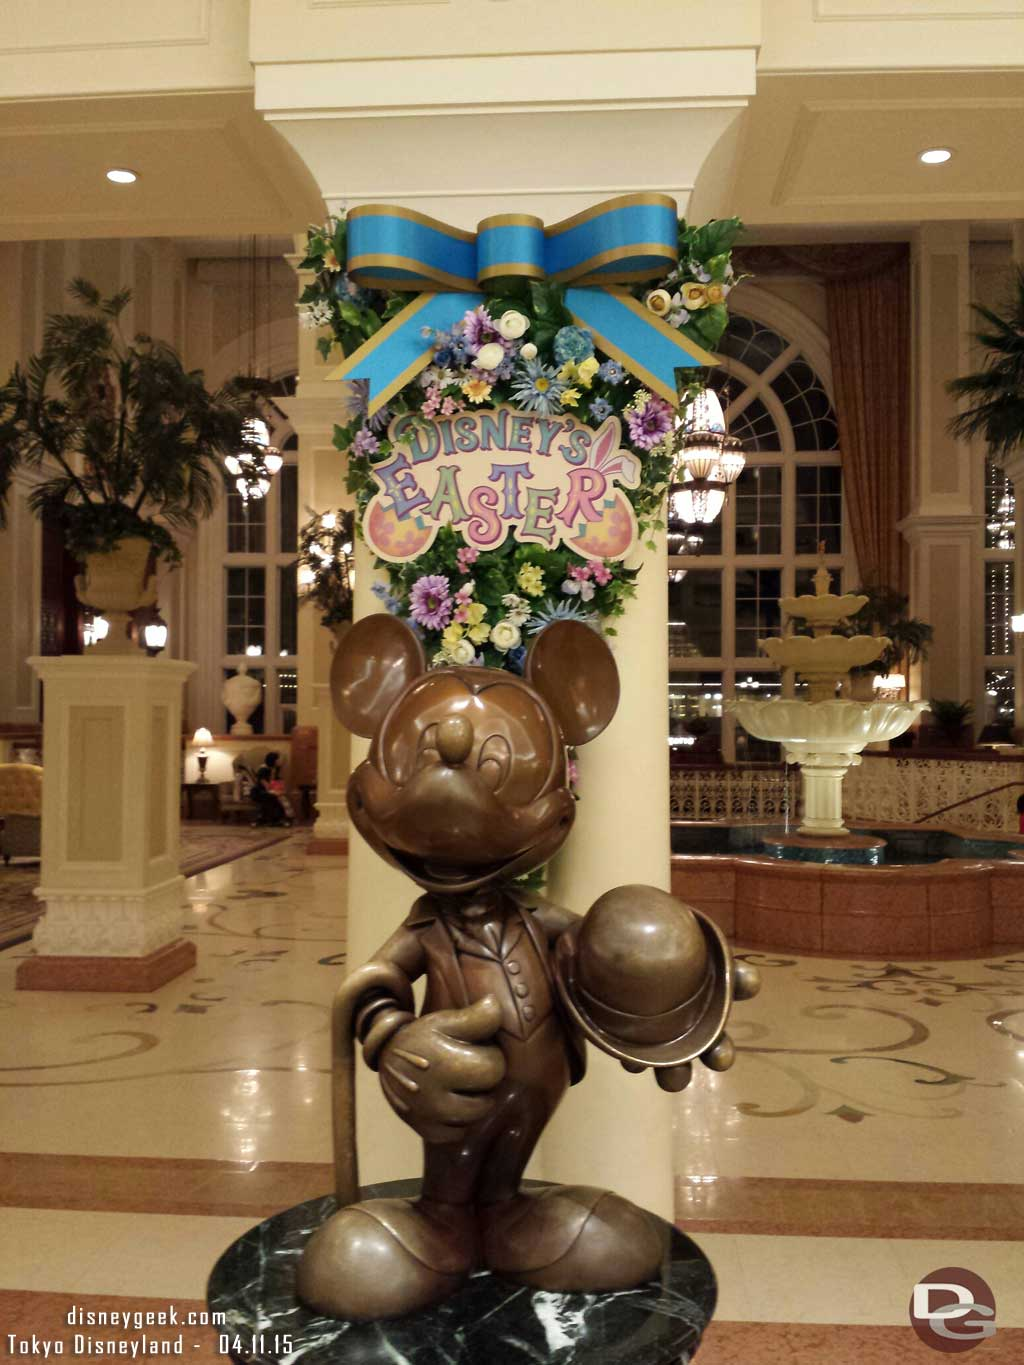 Mickey statue on the #TokyoDisneylandHotel with an Easter sign